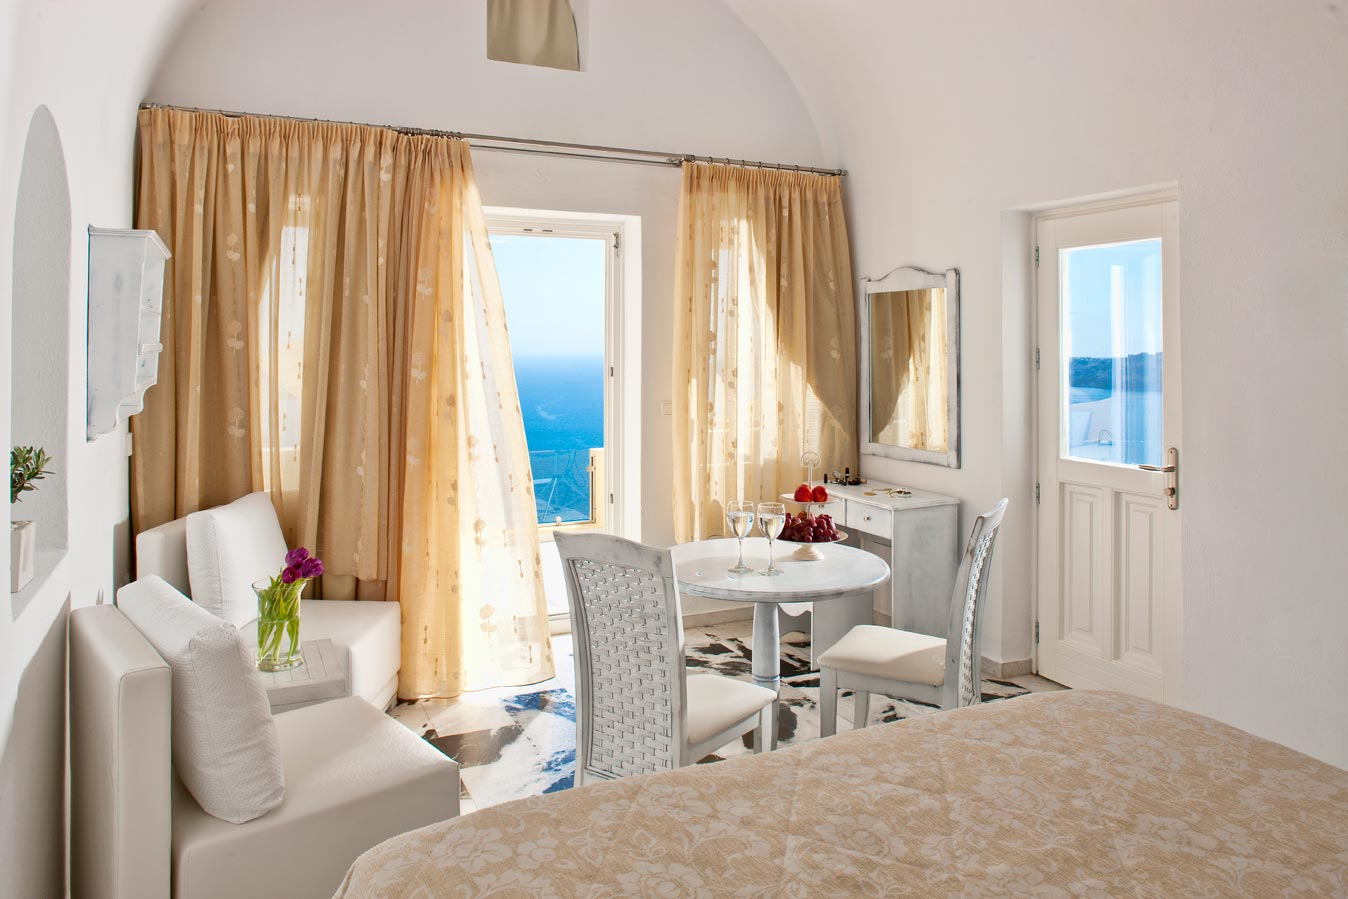 Santorini Princess Spa Hotel Official Booking Engine